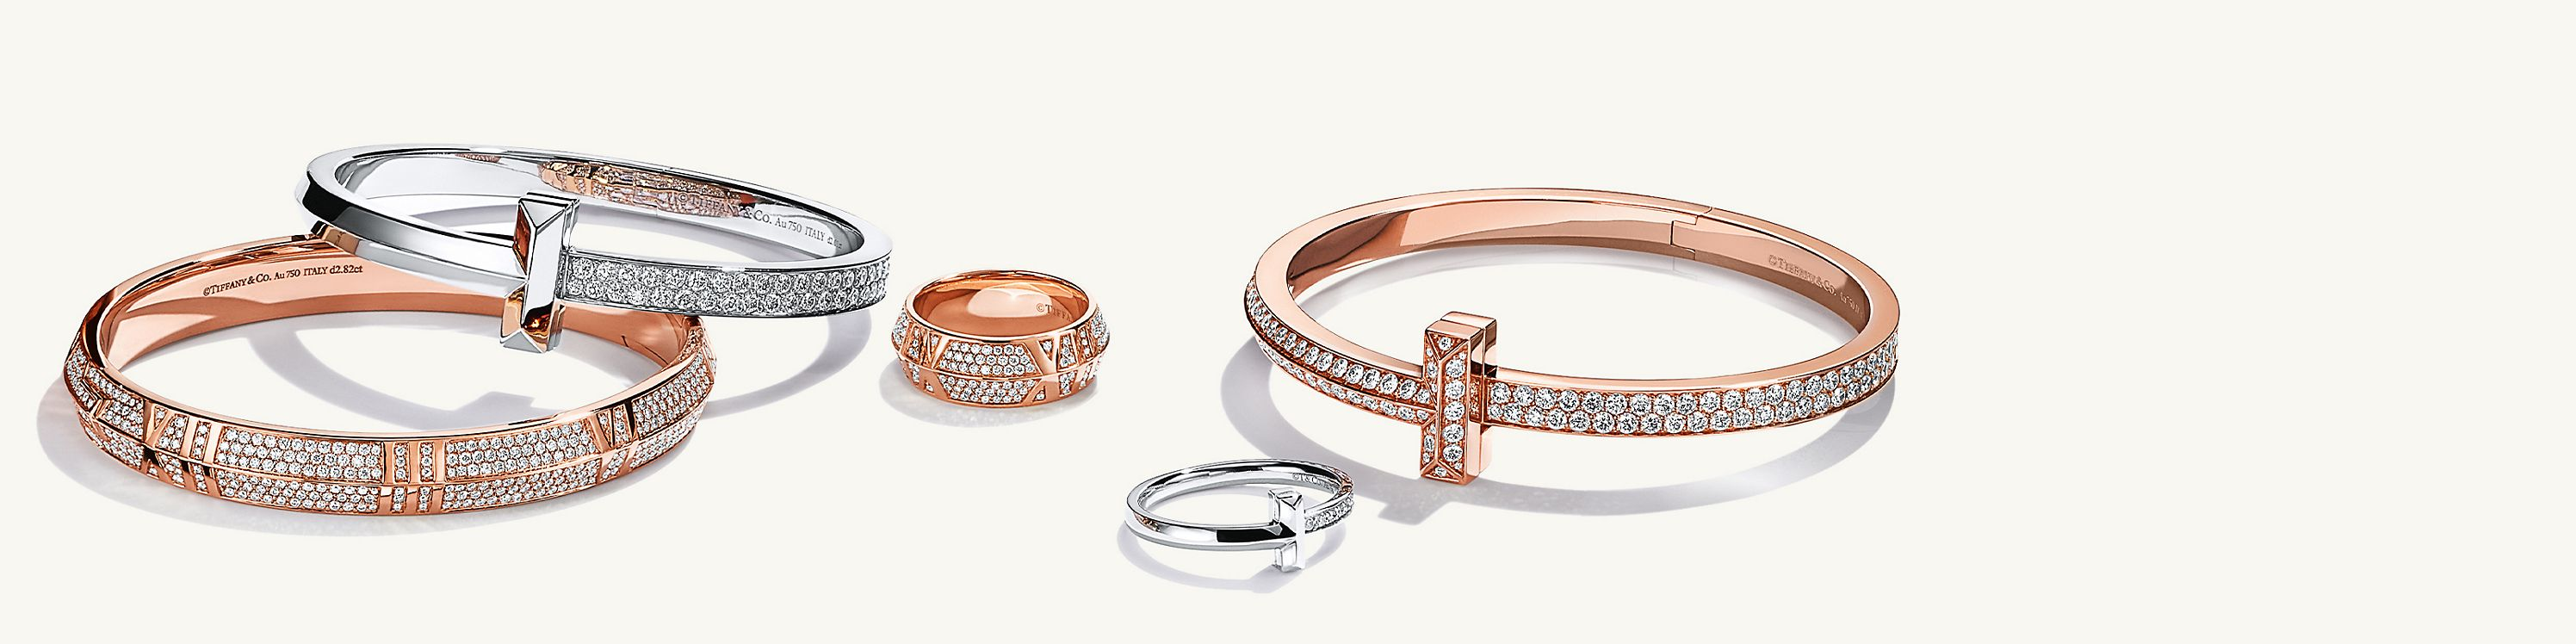 Shop New Tiffany & Co. Jewellery